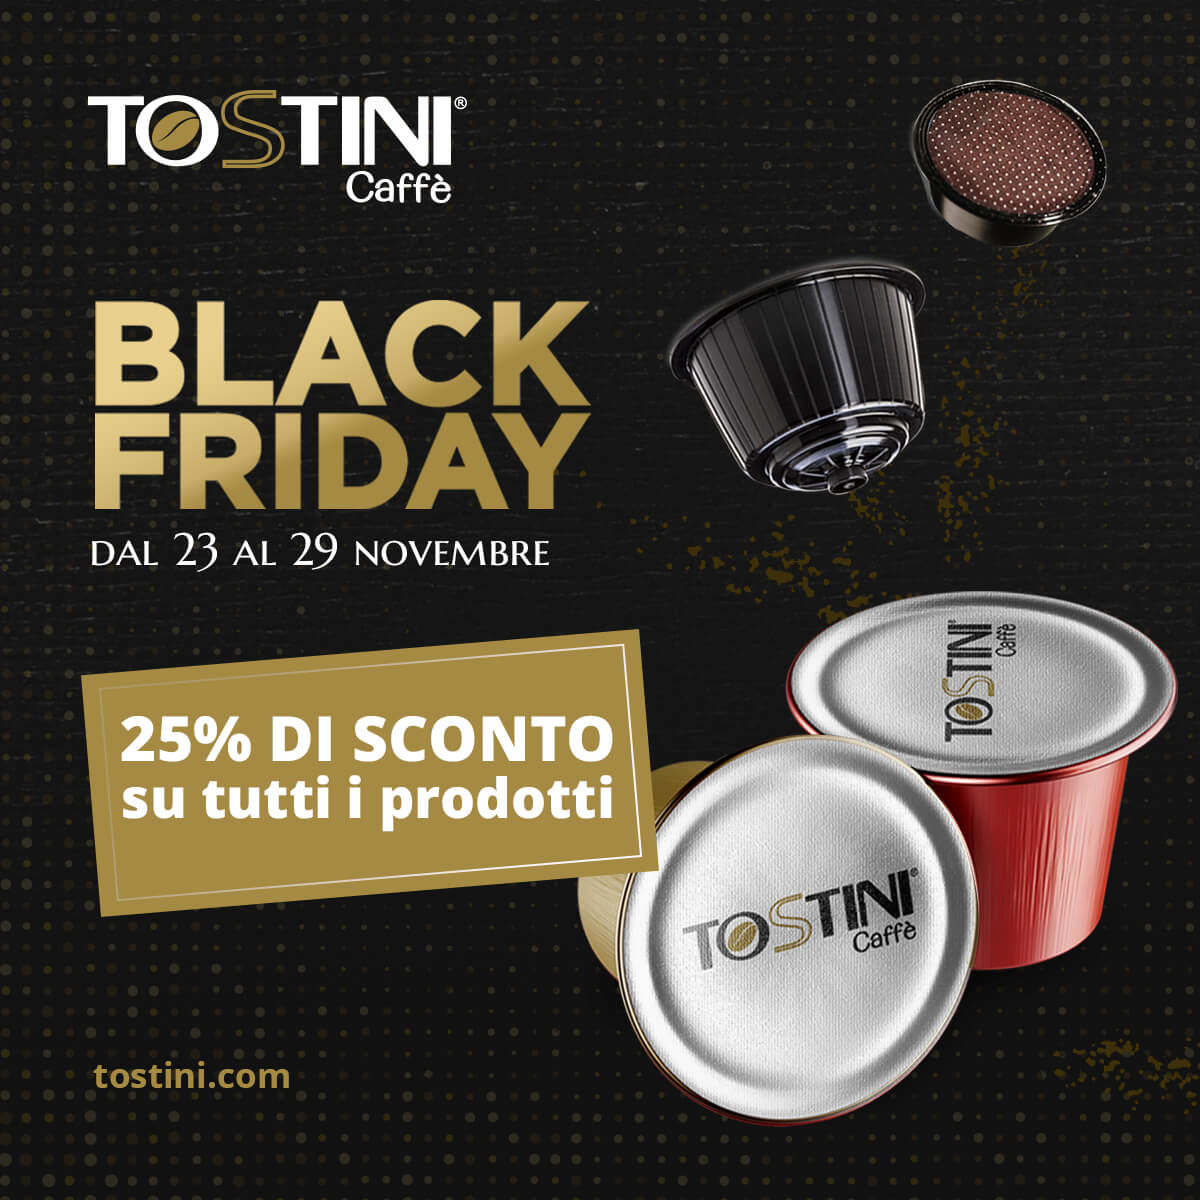 Tostini_ADS_CAPSULE_banner_1200x1200